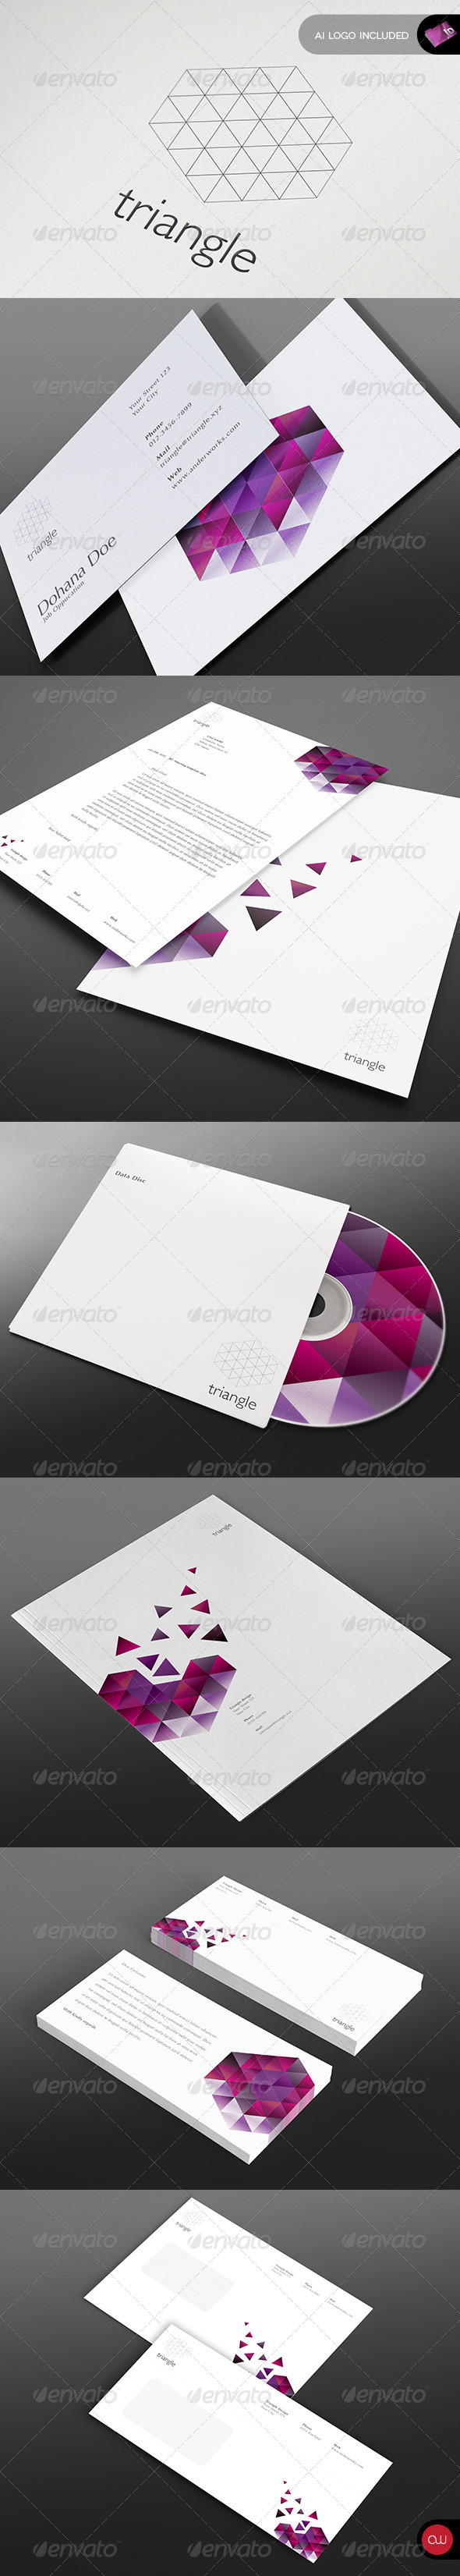 Stationary & Identity - Triangle Series - Stationery Print Templates